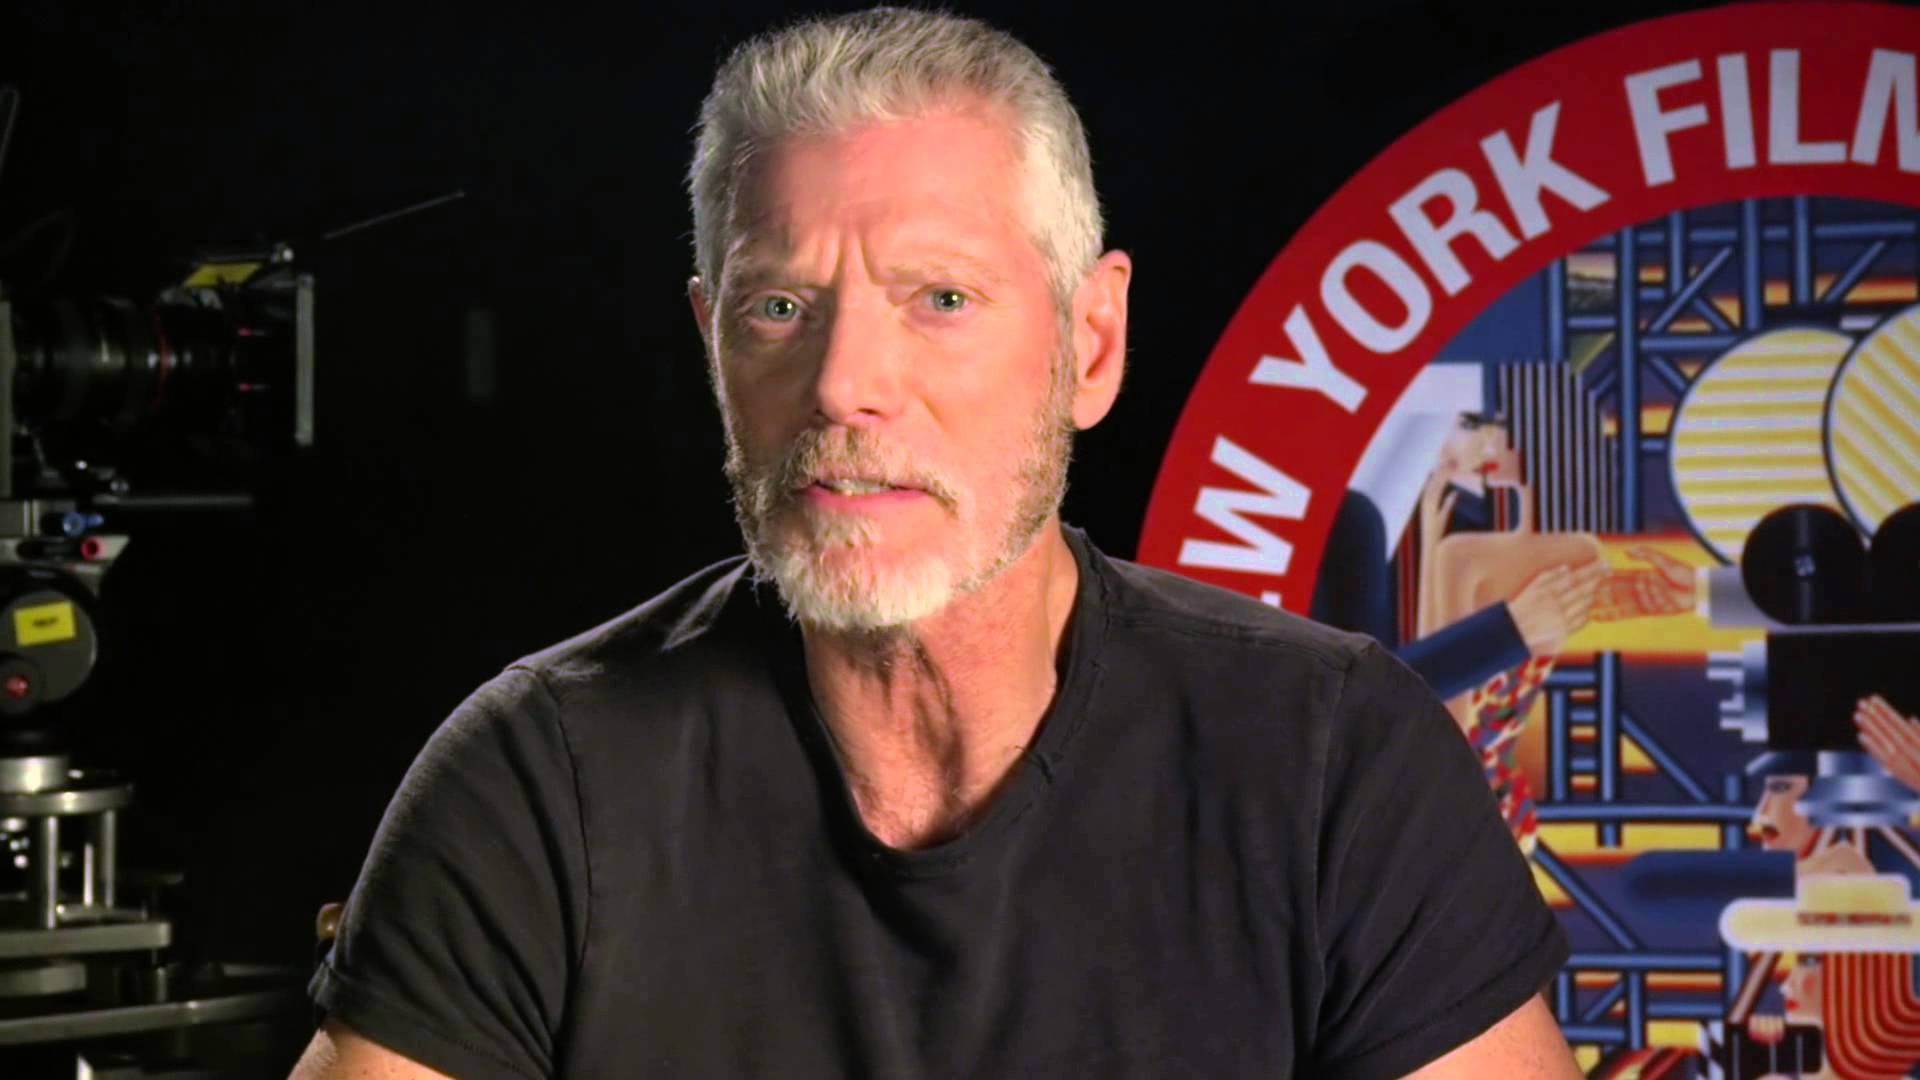 Stephen Lang at New York Film AcademyLIKE? SHARE